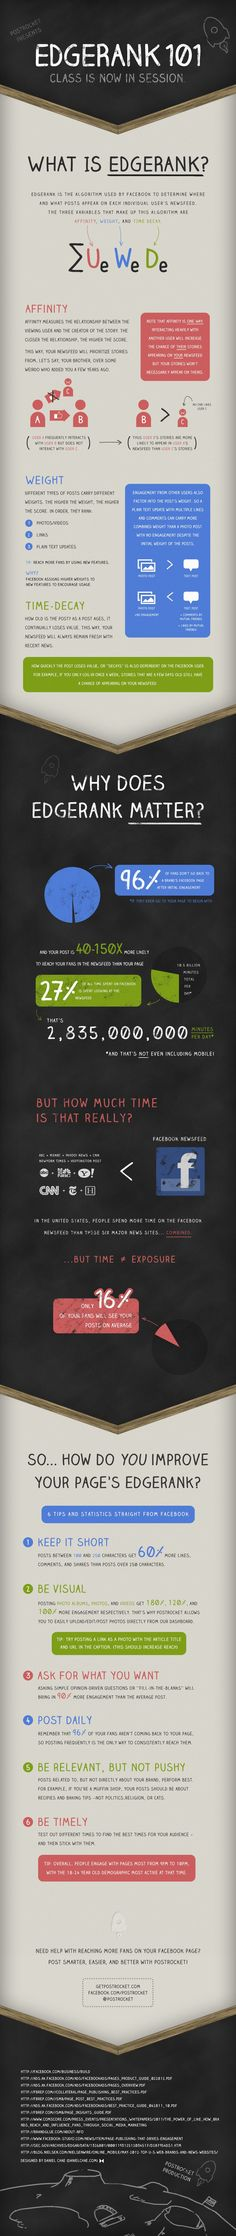 Mashable on how to get your FB page in people's feed -- edgerank 101-972